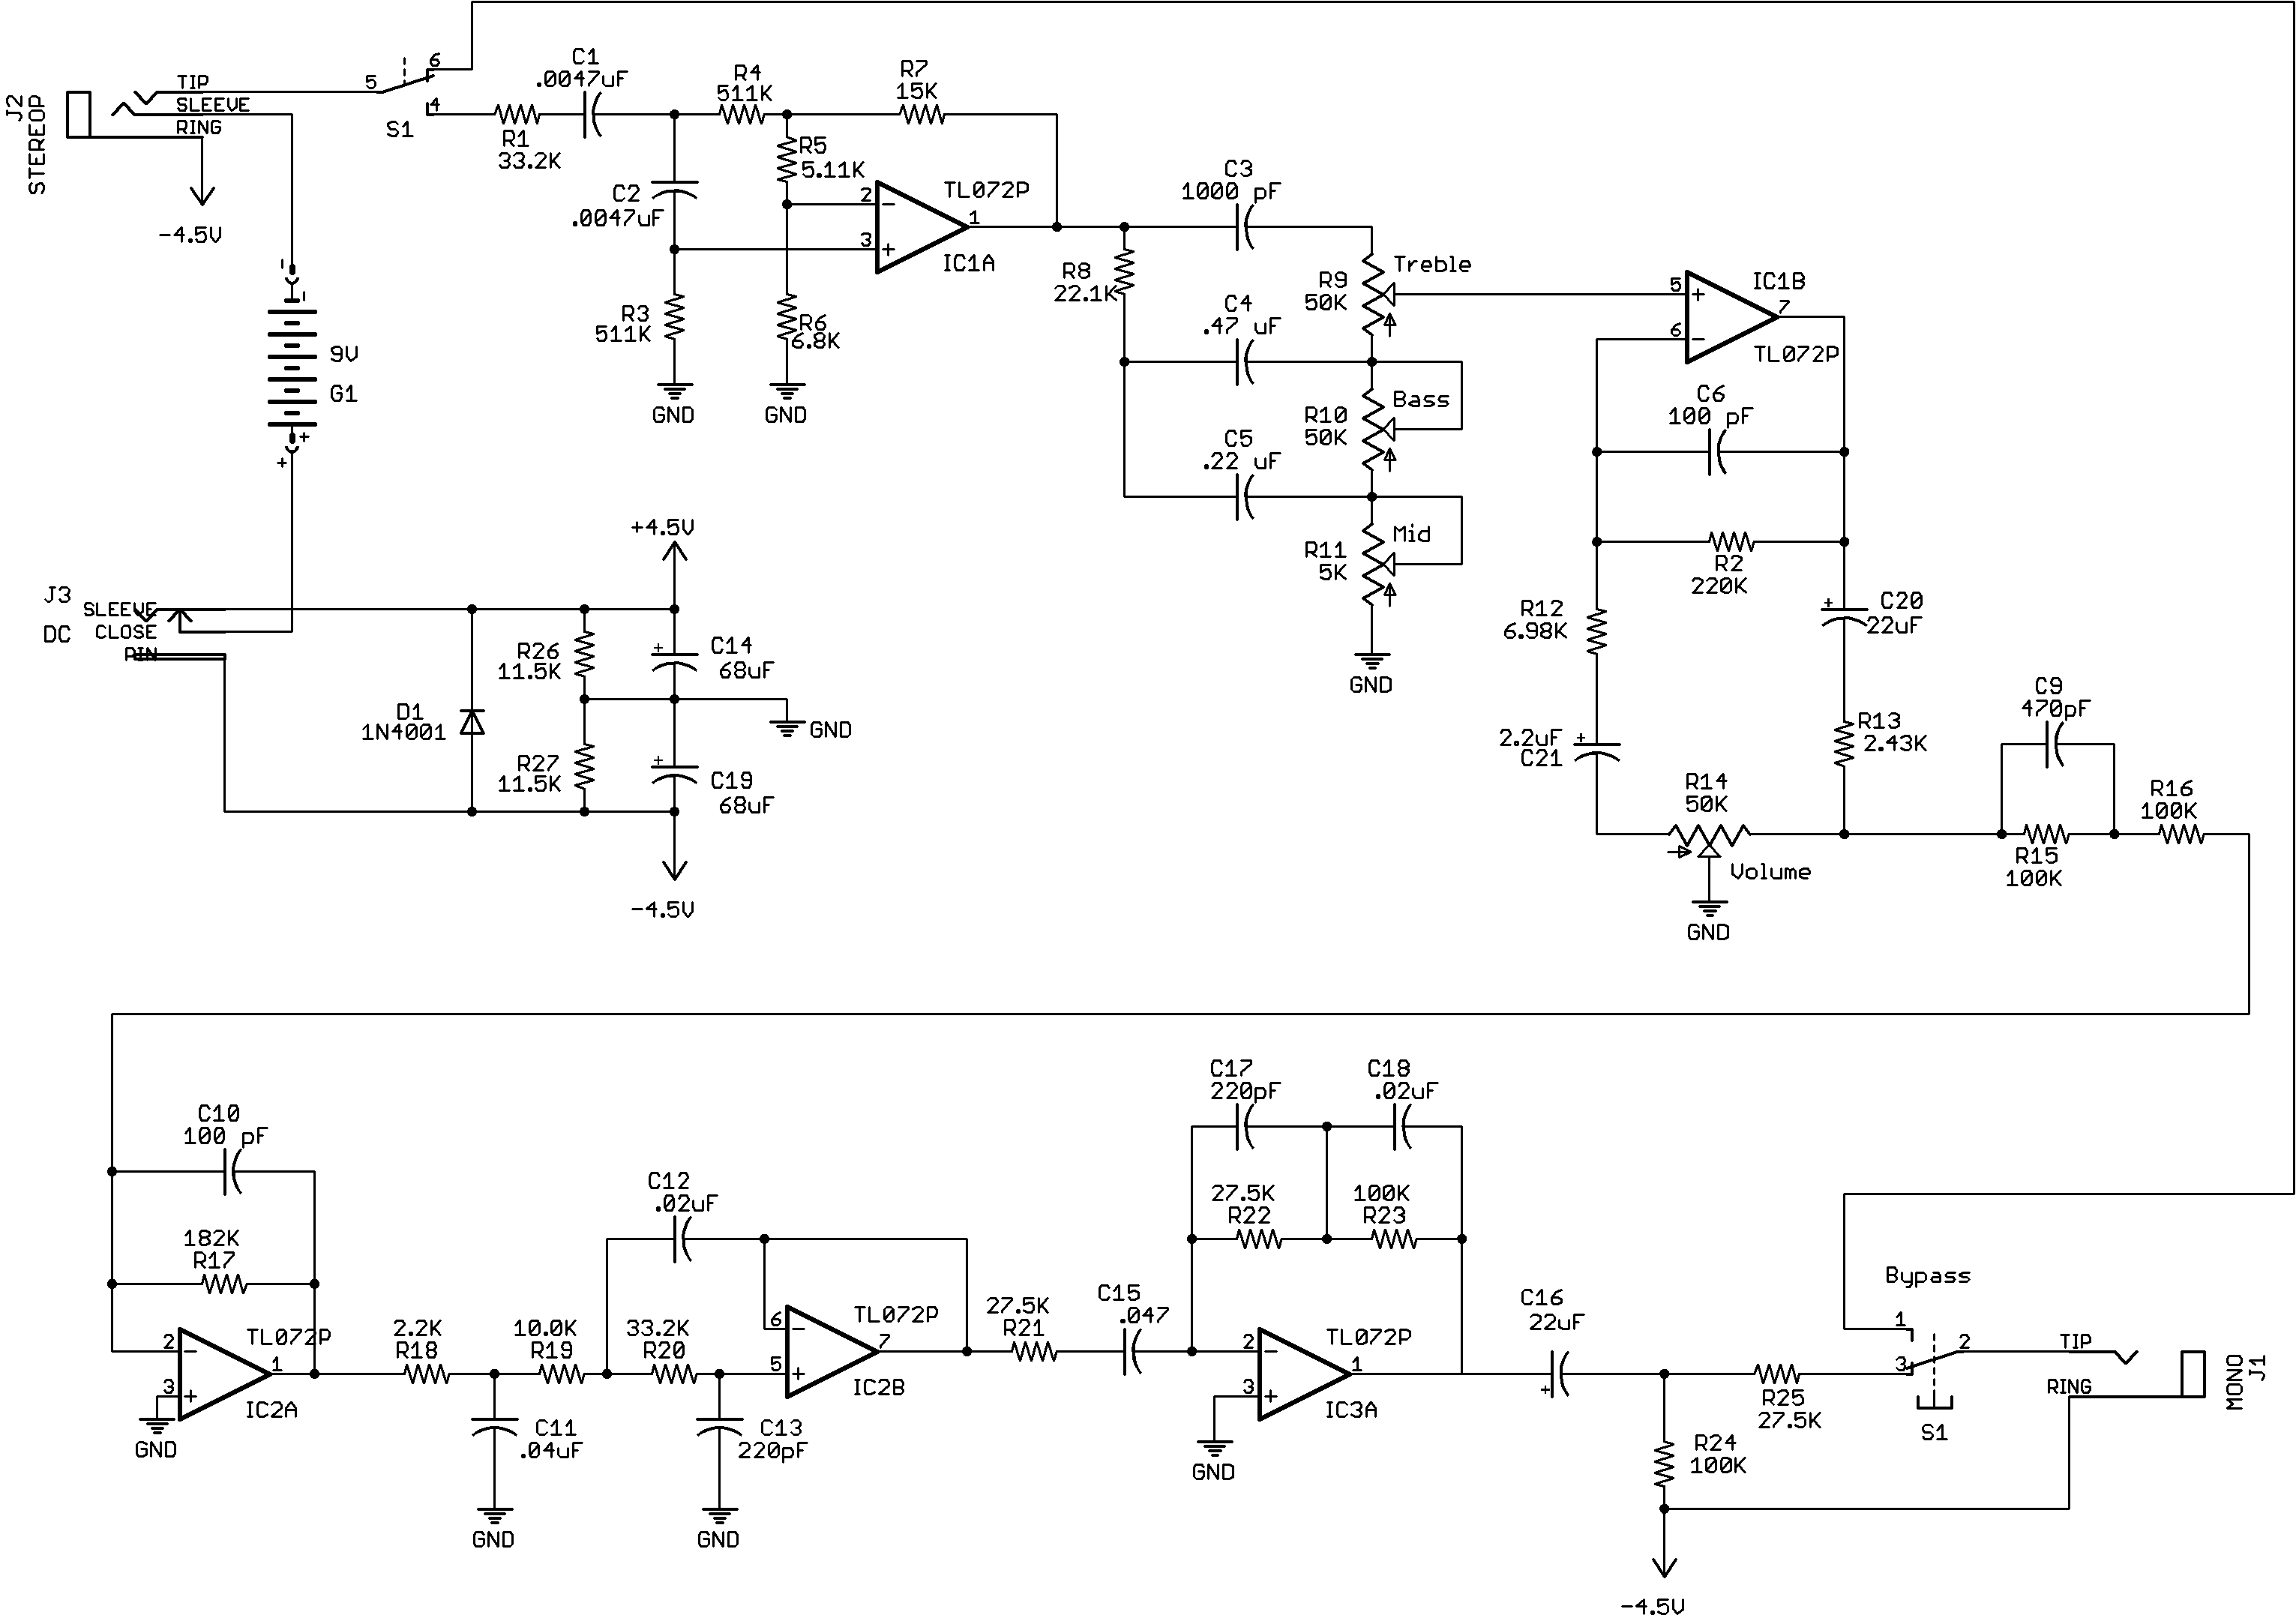 Foot Switch Schematic Fender Princeton Chorus - Wiring Diagram ... on fender super reverb schematic, fender ultimate chorus specs, fender princeton 650 schematic, fender power chorus schematic, fender princeton 112 schematic, roland jazz chorus schematic, fender frontman 15g schematic, fender amp manuals, fender pro reverb schematic, fender deluxe 85 schematic, fender frontman 25r schematic, fender blues deluxe schematic, fender the twin schematic, princeton reverb schematic, fender princeton 65 schematic, fender hot rod deville schematic, fender amp schematics, fender m 80 manual, fender frontman 212r schematic, fender champ schematic aa764,